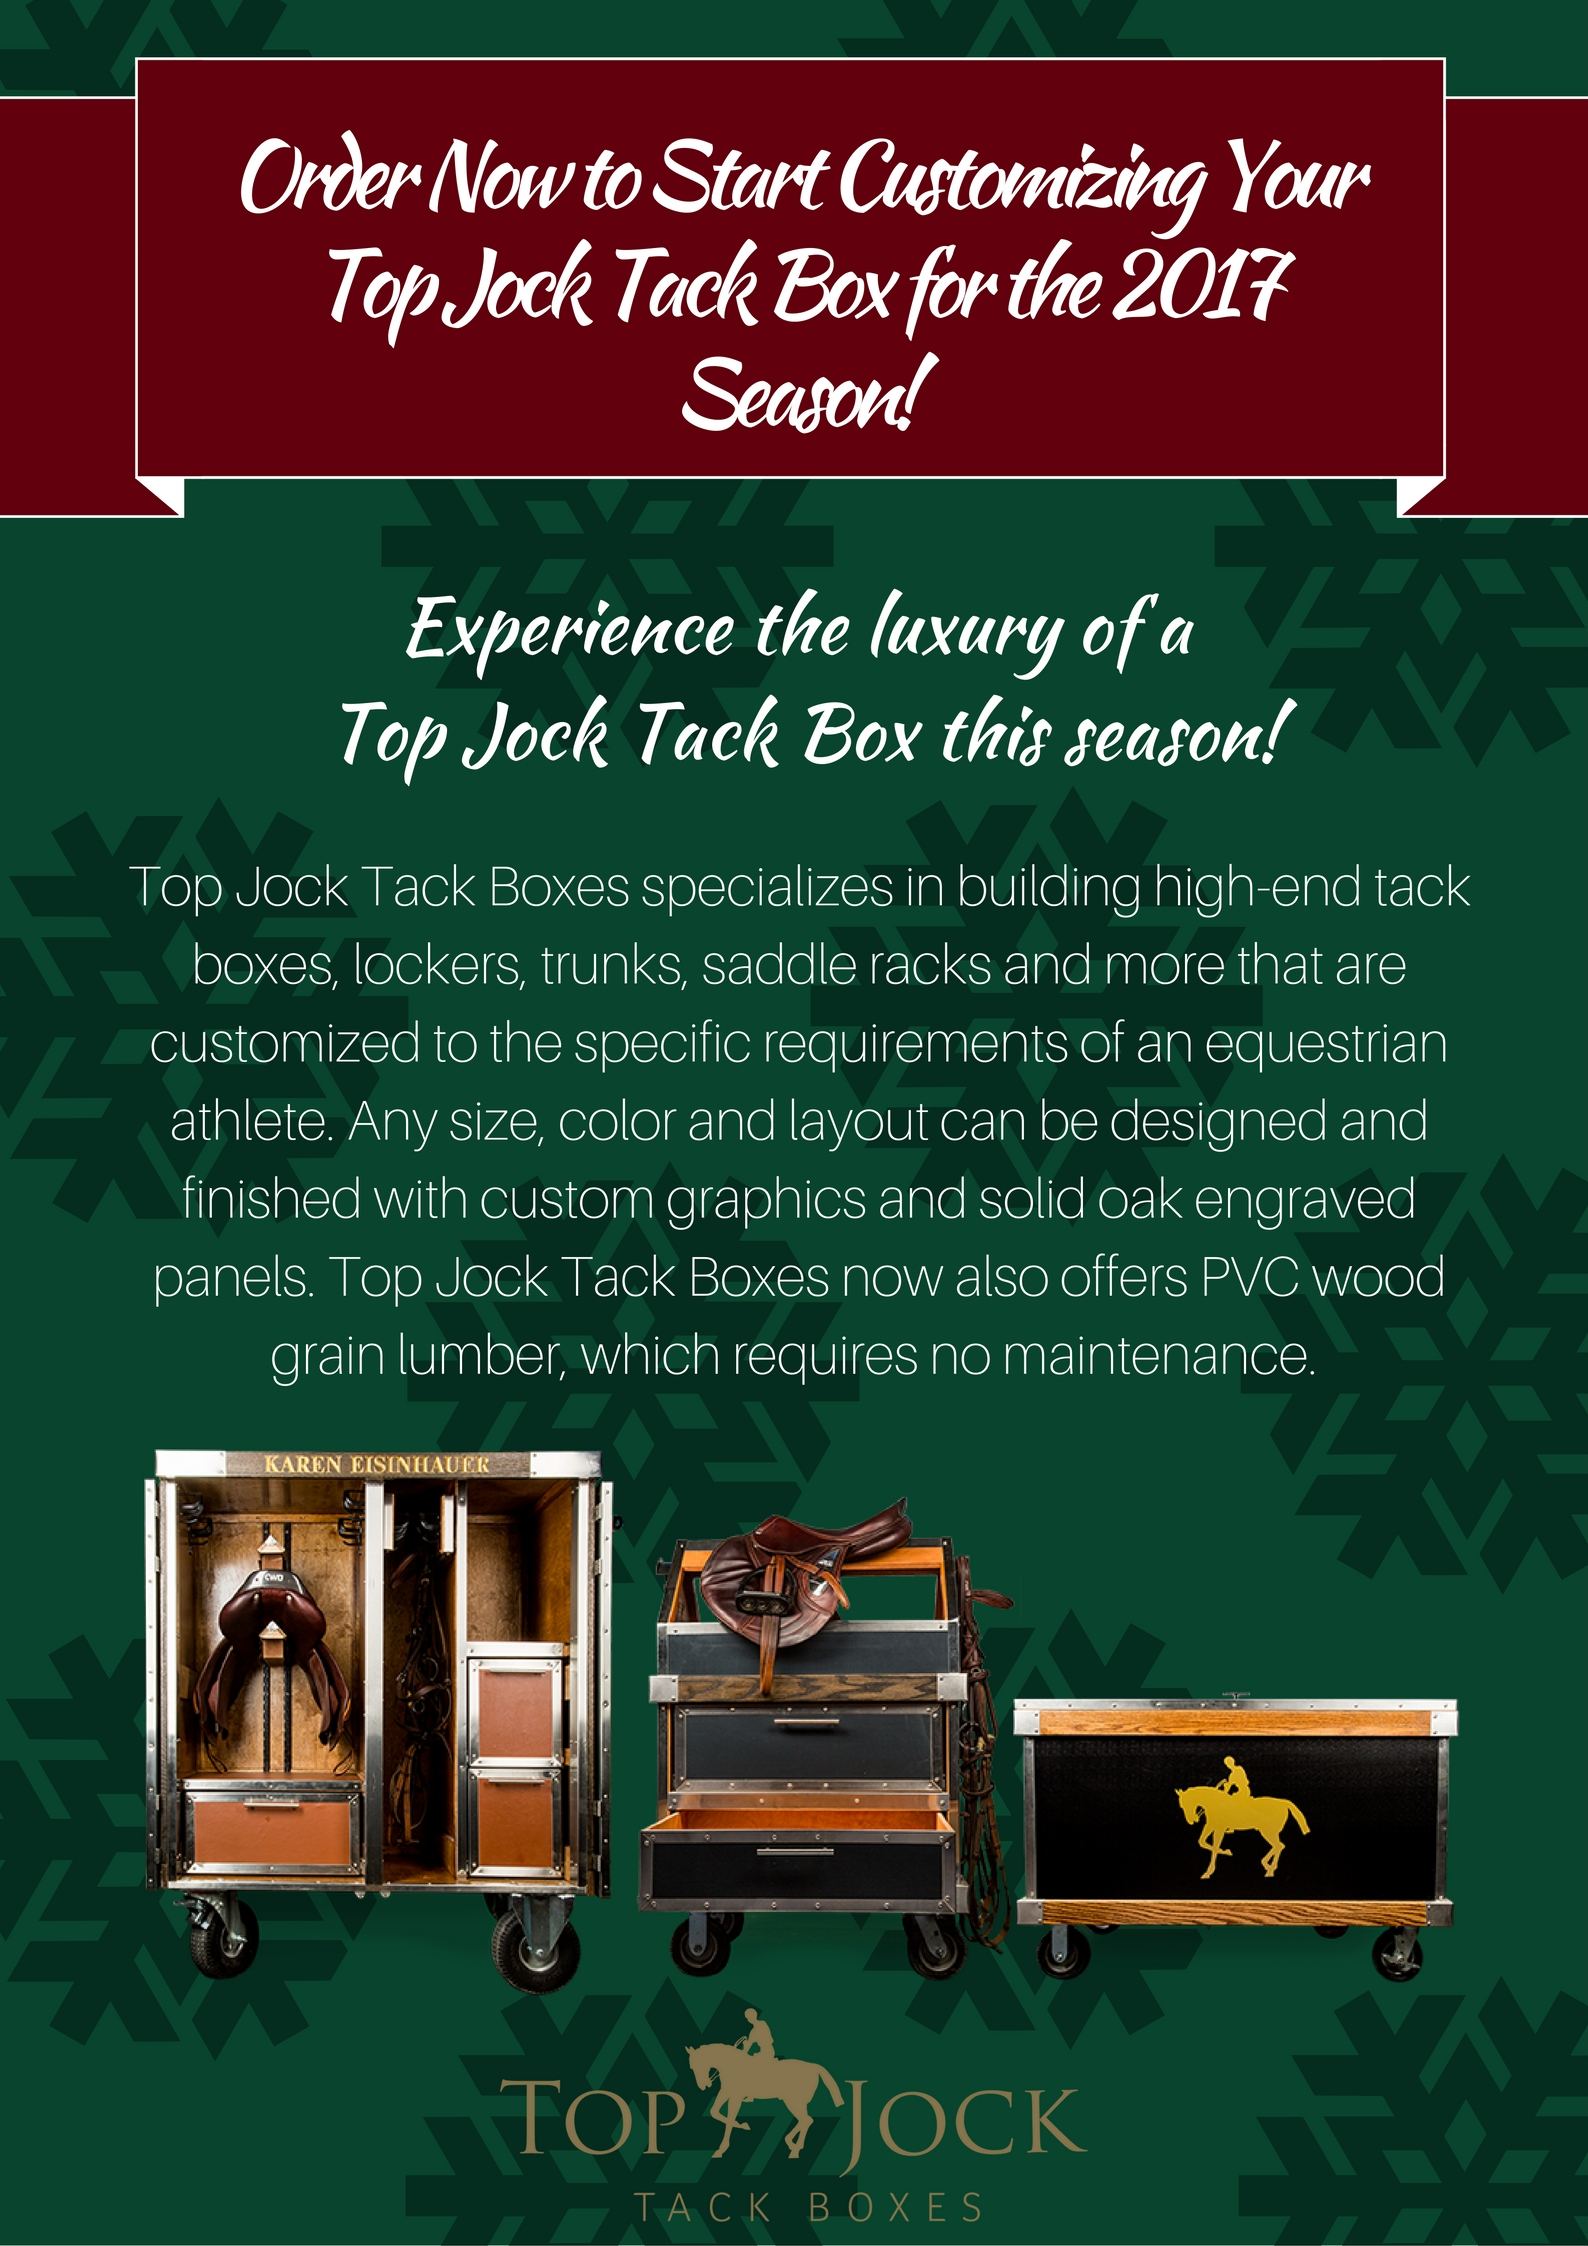 Order Now to Start Customizing Your Top Jock Tack Box for the 2017 Season!